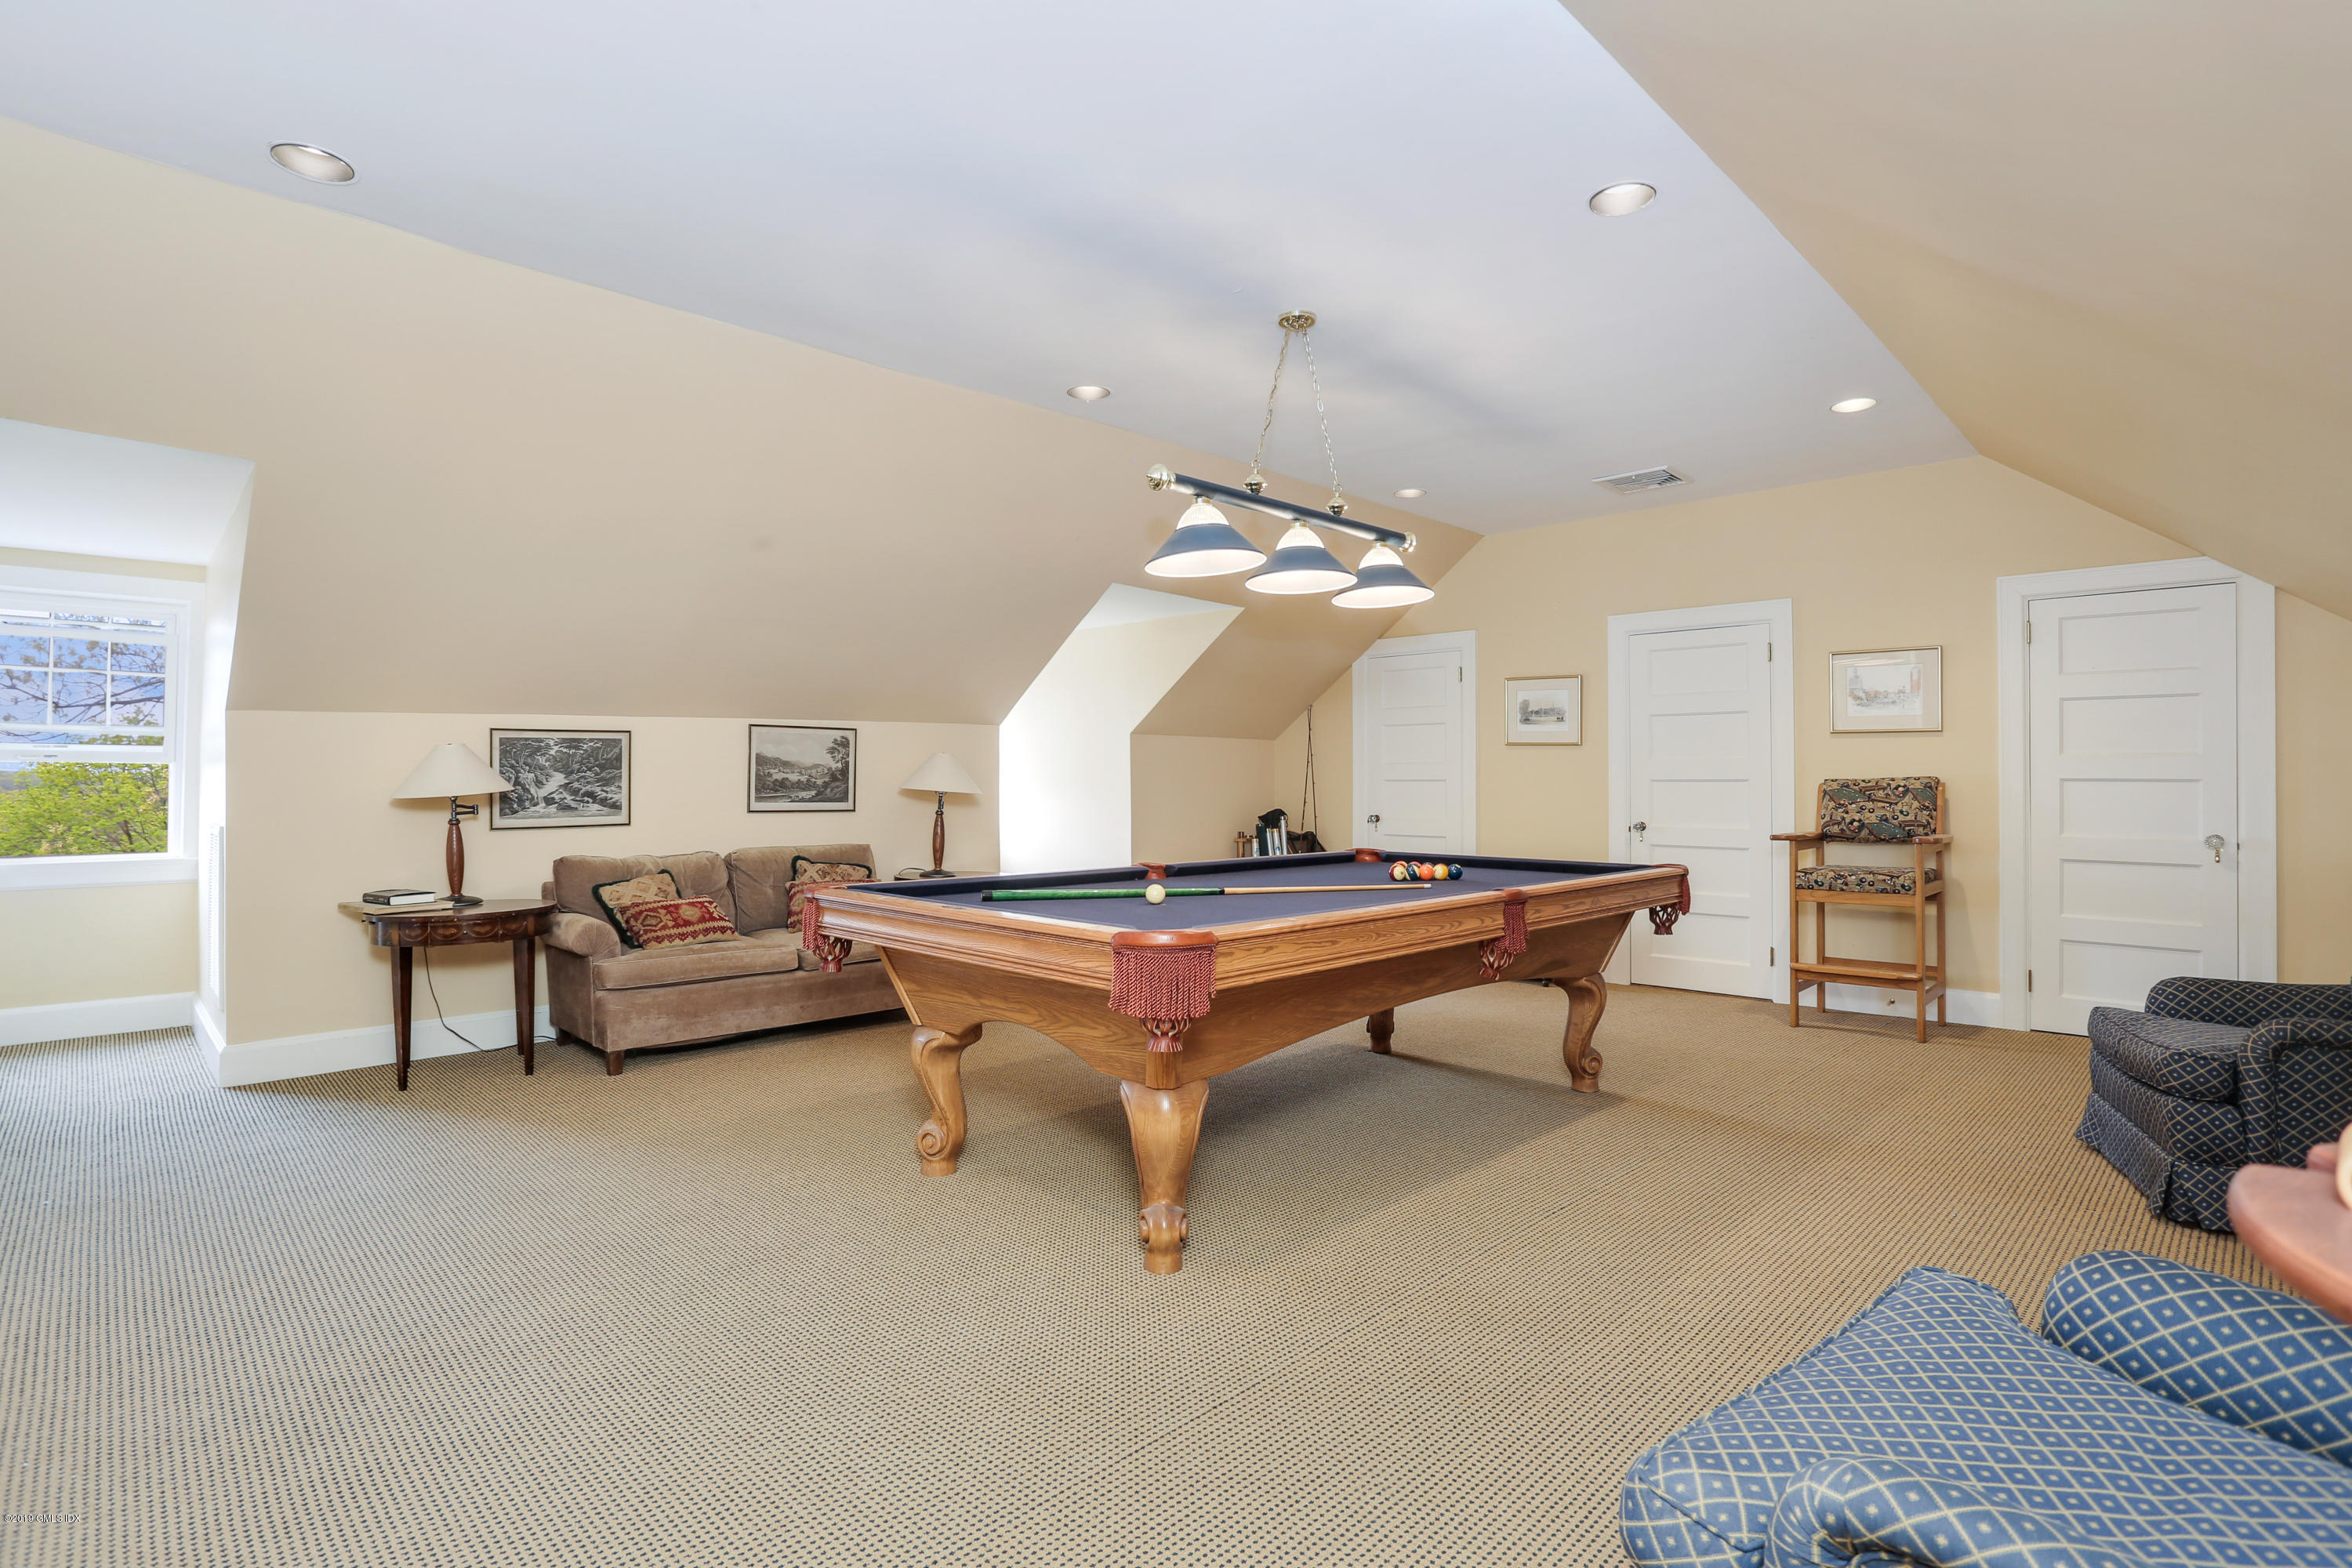 434 North Street,Greenwich,Connecticut 06830,5 Bedrooms Bedrooms,5 BathroomsBathrooms,Single family,North,106512